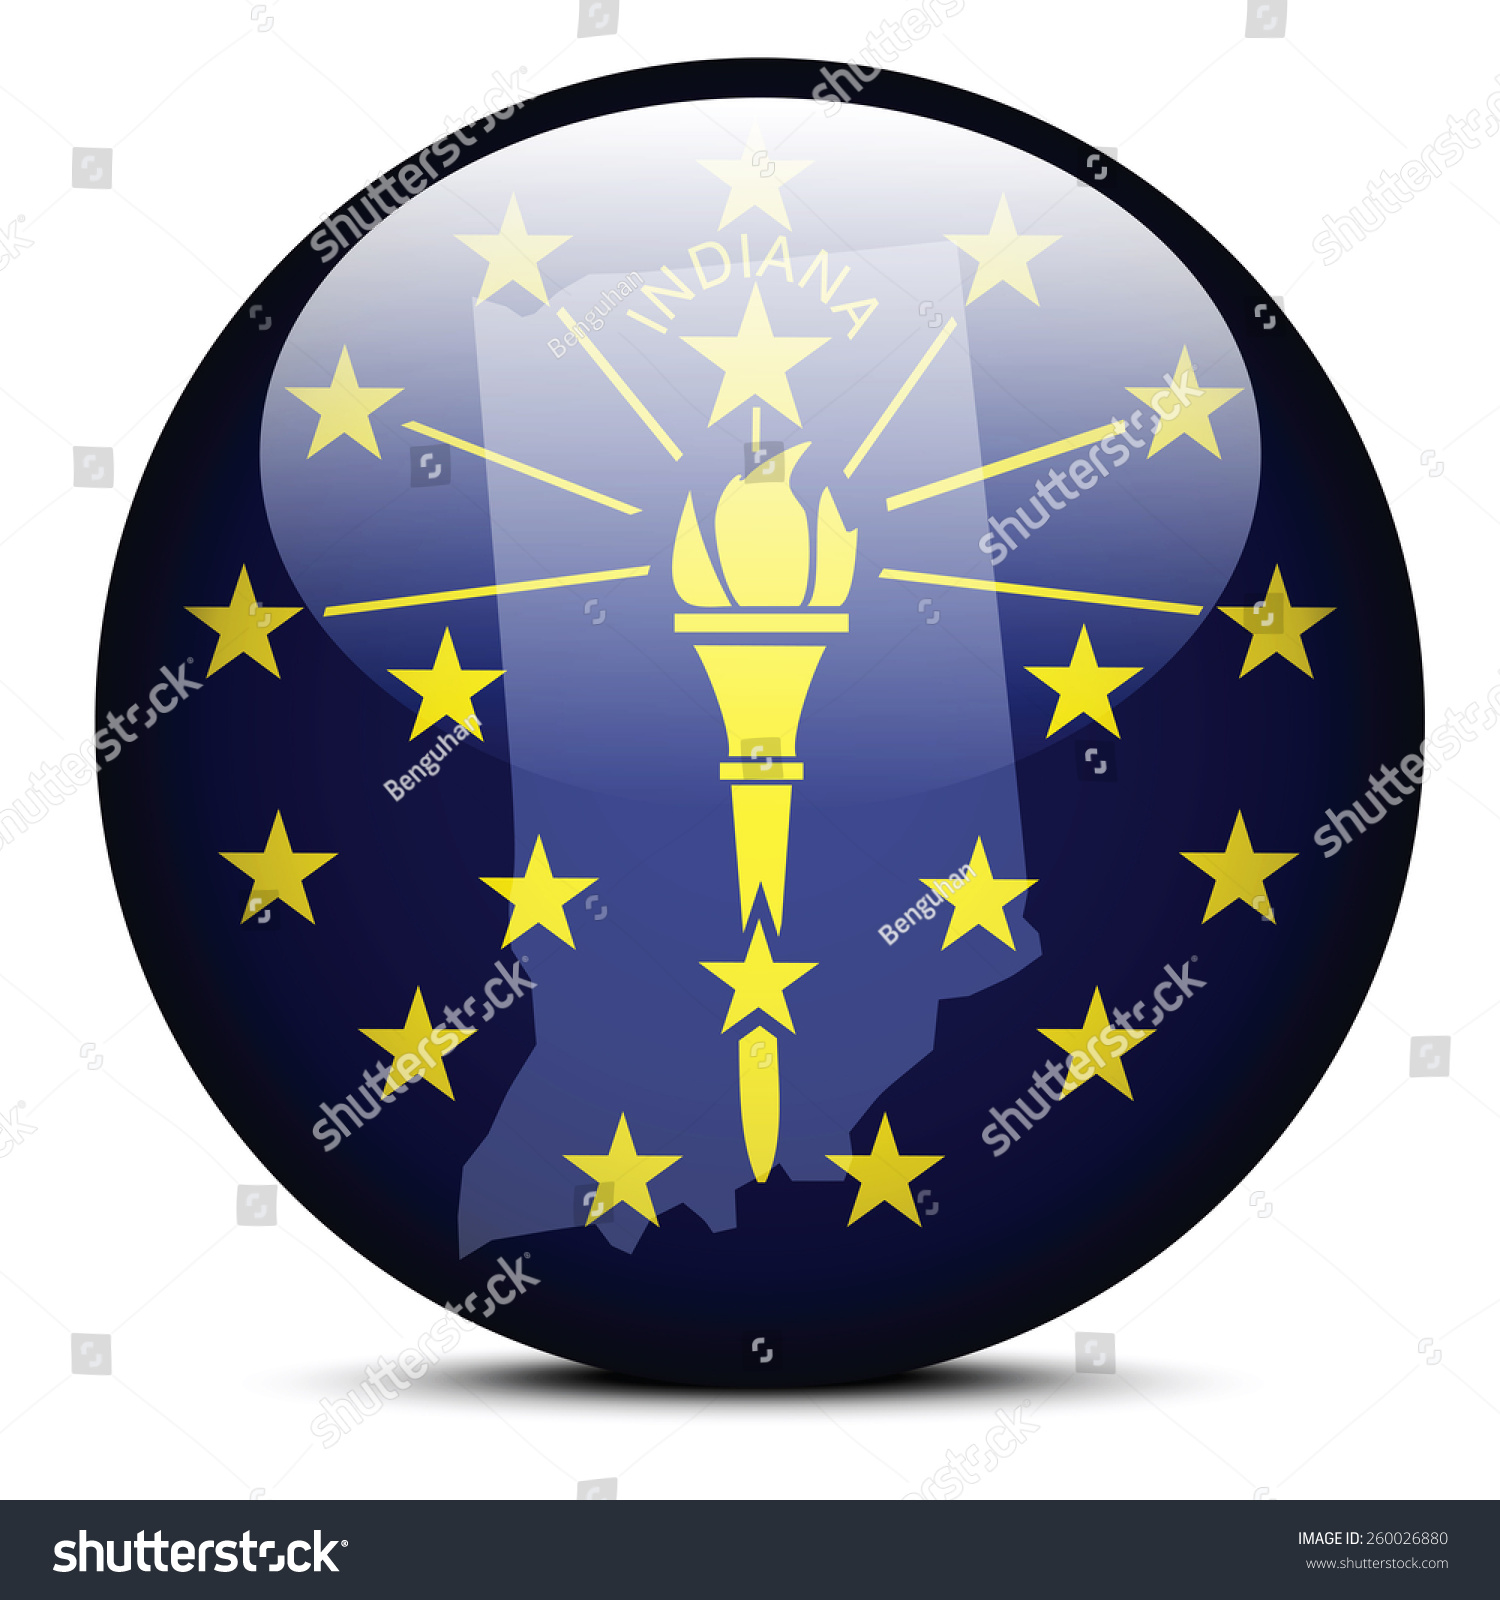 Vector Image Map On Flag on Stock Vector (Royalty Free) 260026880 on ma state map, ne state map, usa state map, indiana state physical map, california state map, florida state map, ecu state map, ari state map, wis state map, indiana state parks map, vol state map, new york state physical map, wyo state map, ny state map, indiana's state map, state of iowa county map, indiana and illinois state map, northern indiana state map, big indiana state map, indiana state city map,